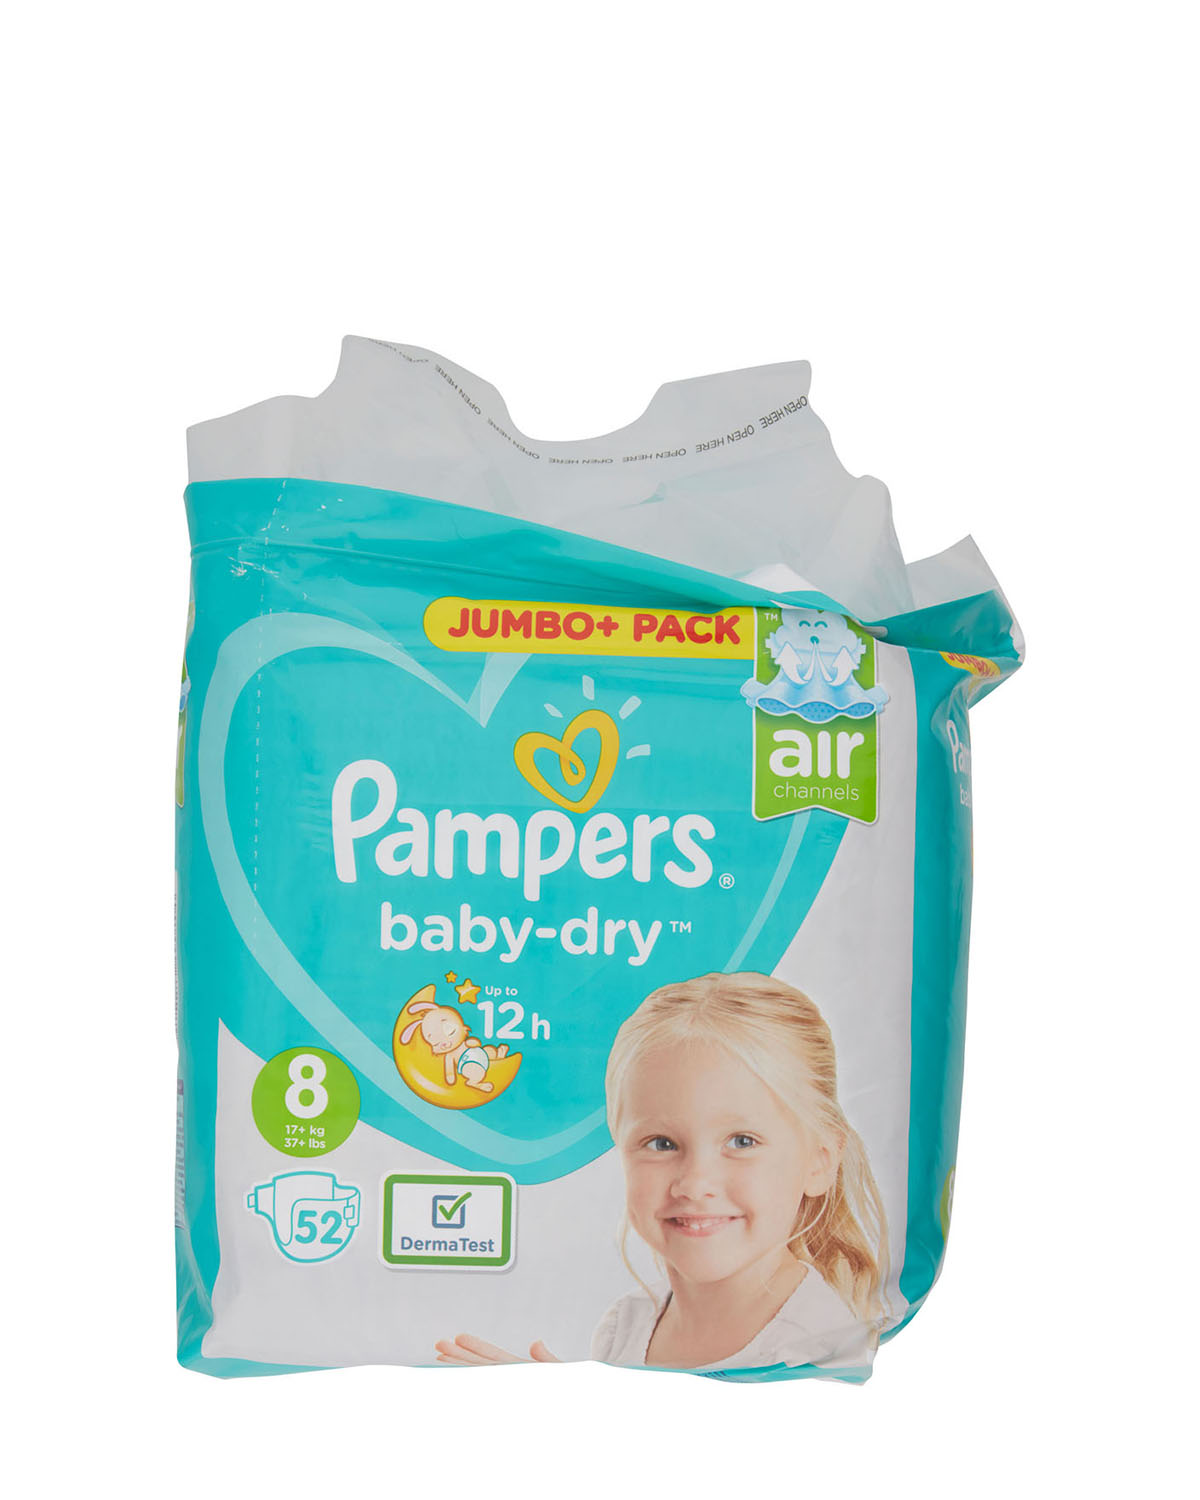 Pampers Baby Dry Size 8 Jumbo Plus - 52 Nappies thumbnail